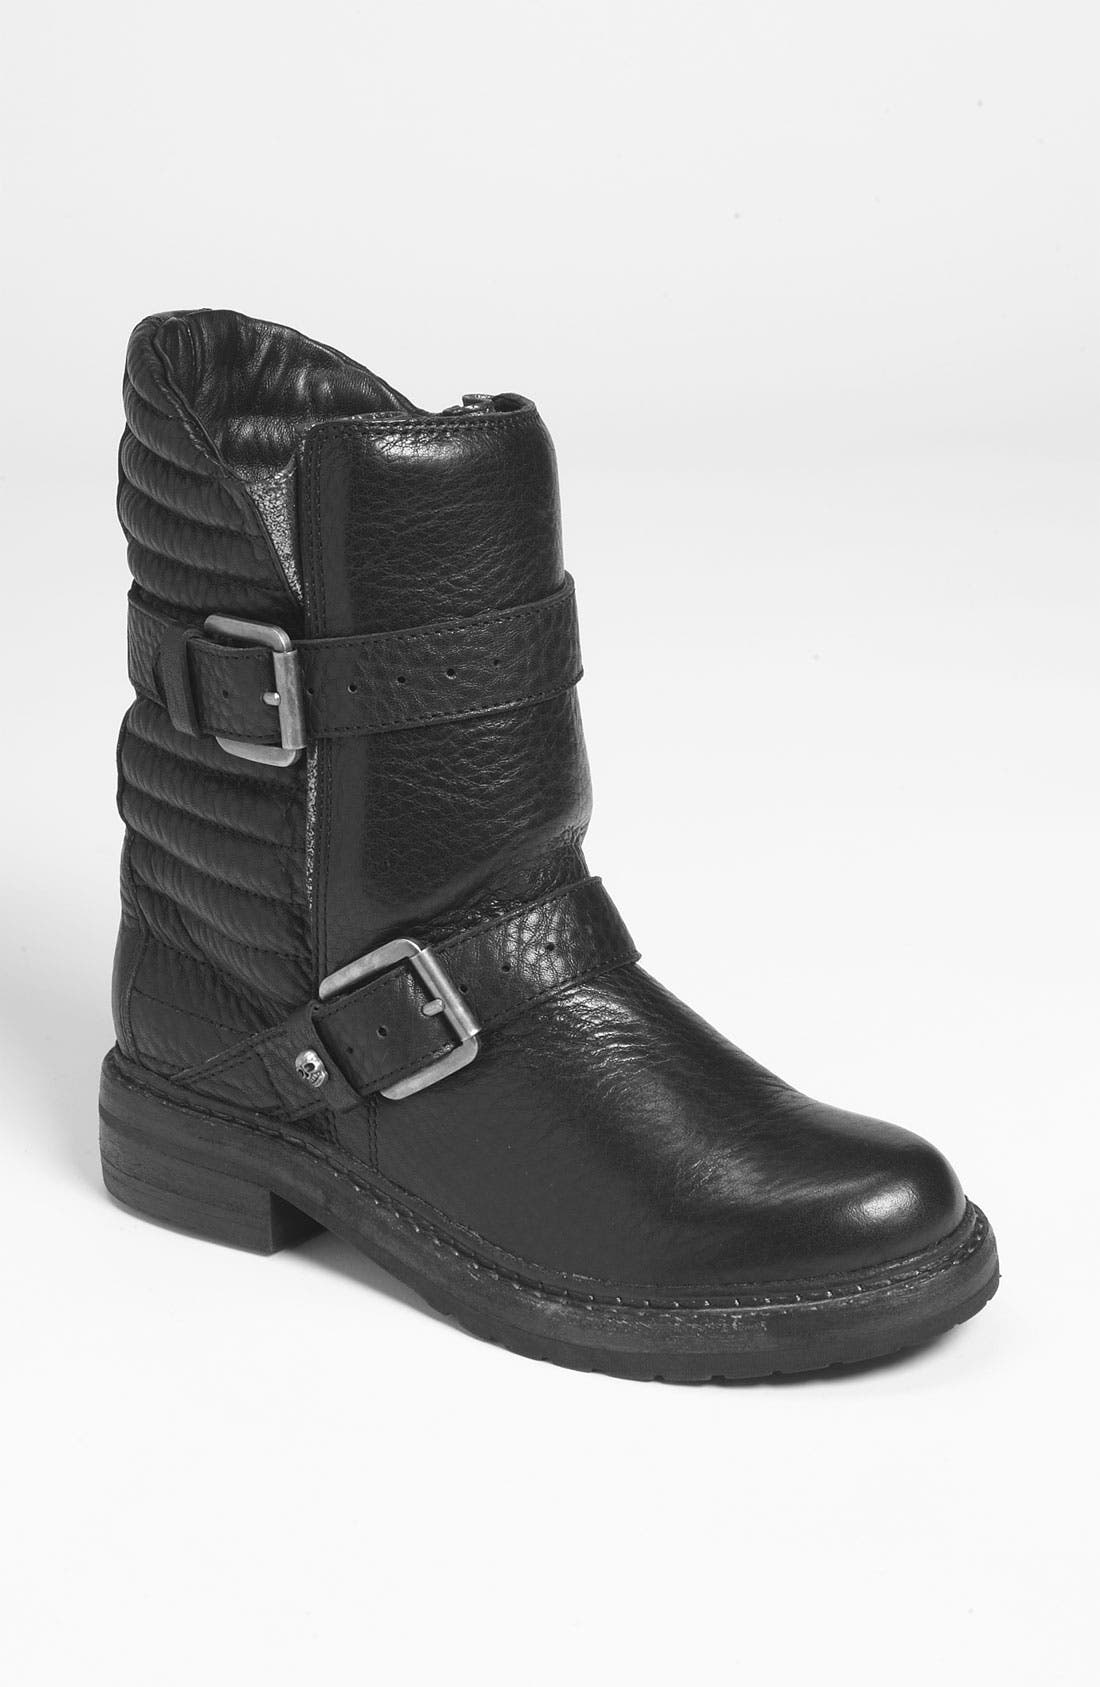 Alternate Image 1 Selected - Zadig & Voltaire 'Ginger' Boot